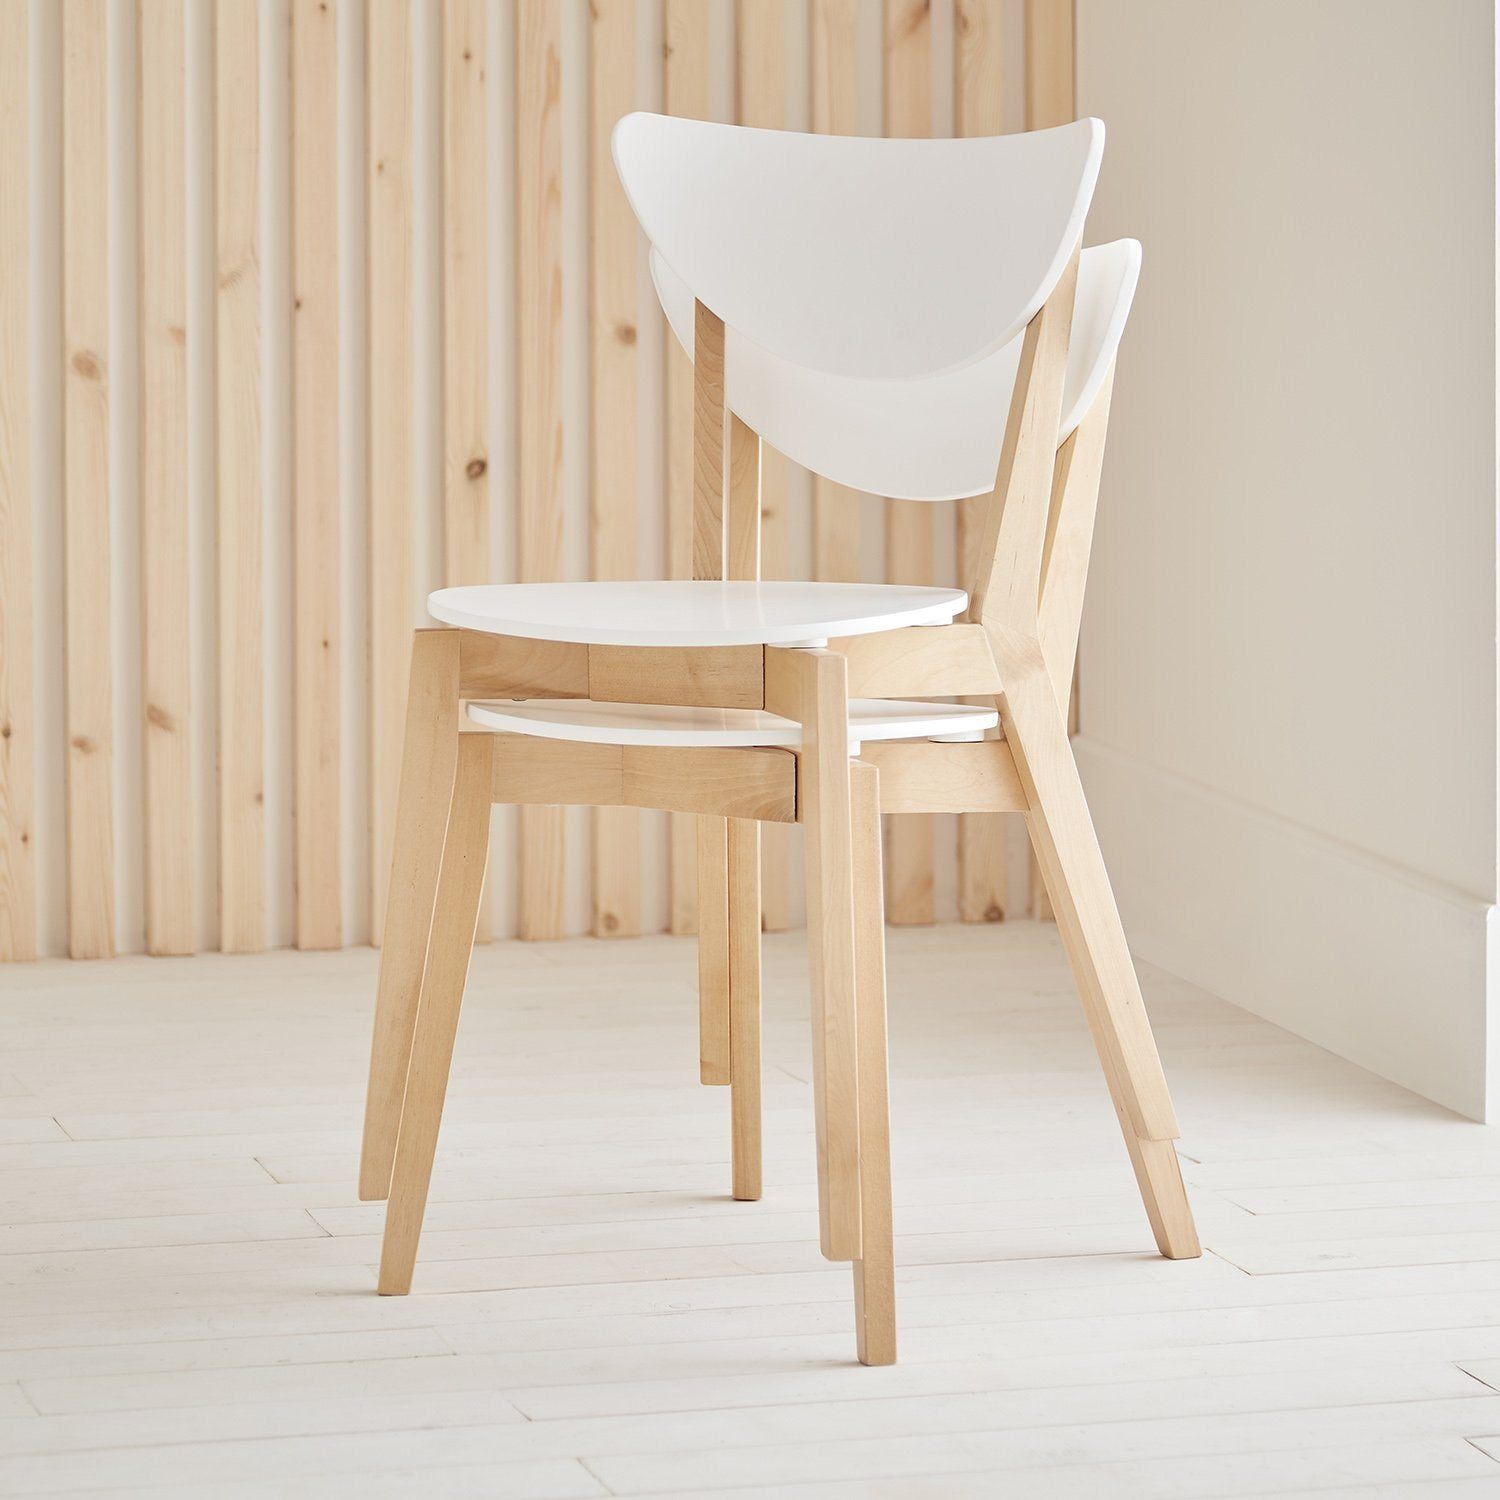 Paul stackable chairs x2 - white - Laura James